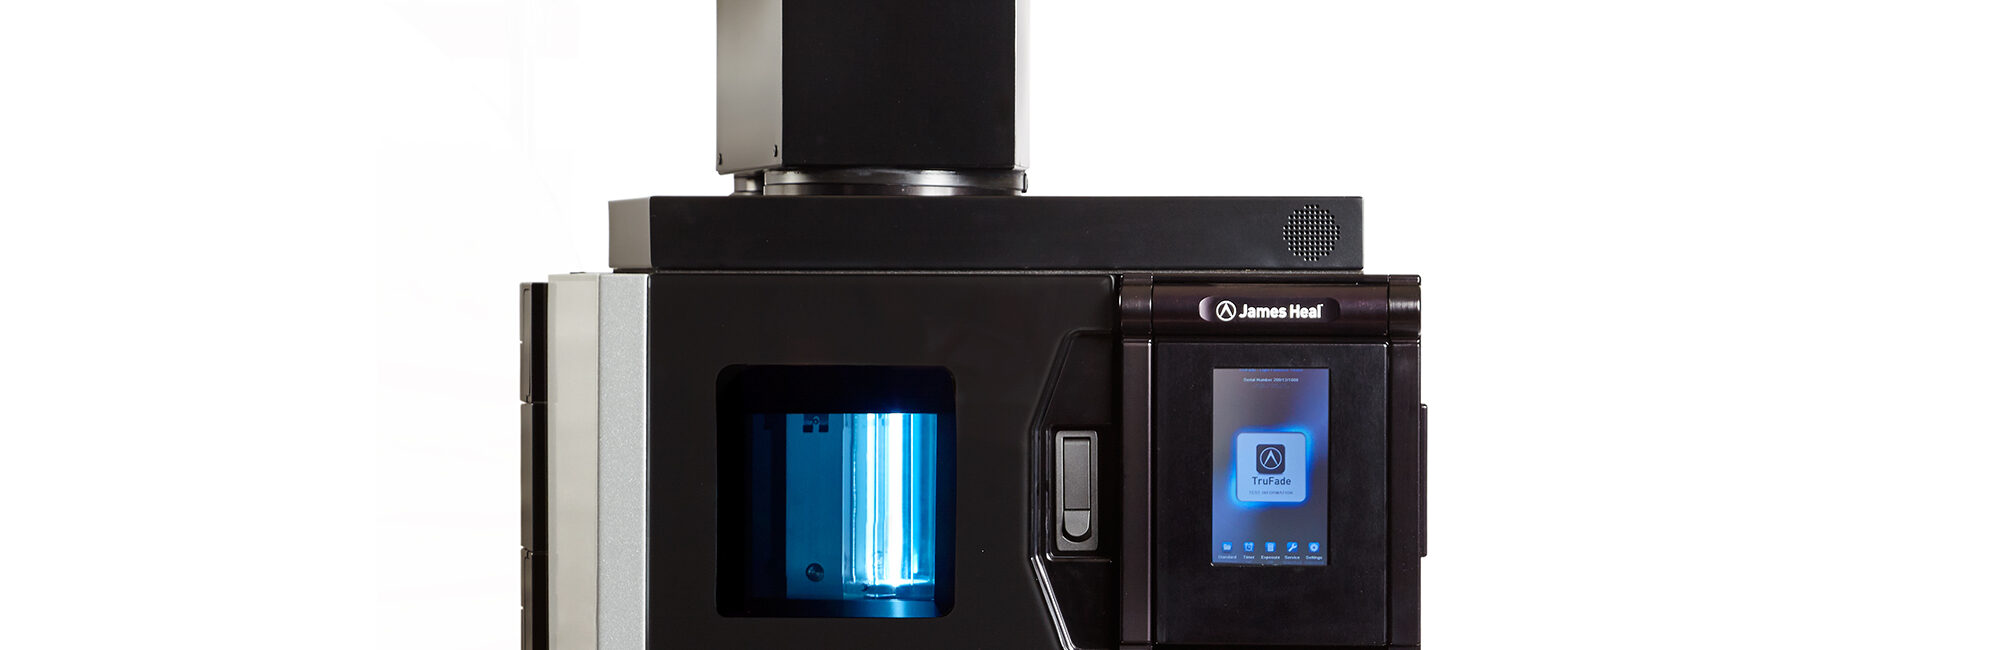 James Heal TruFade xenon arc light fastness tester header image